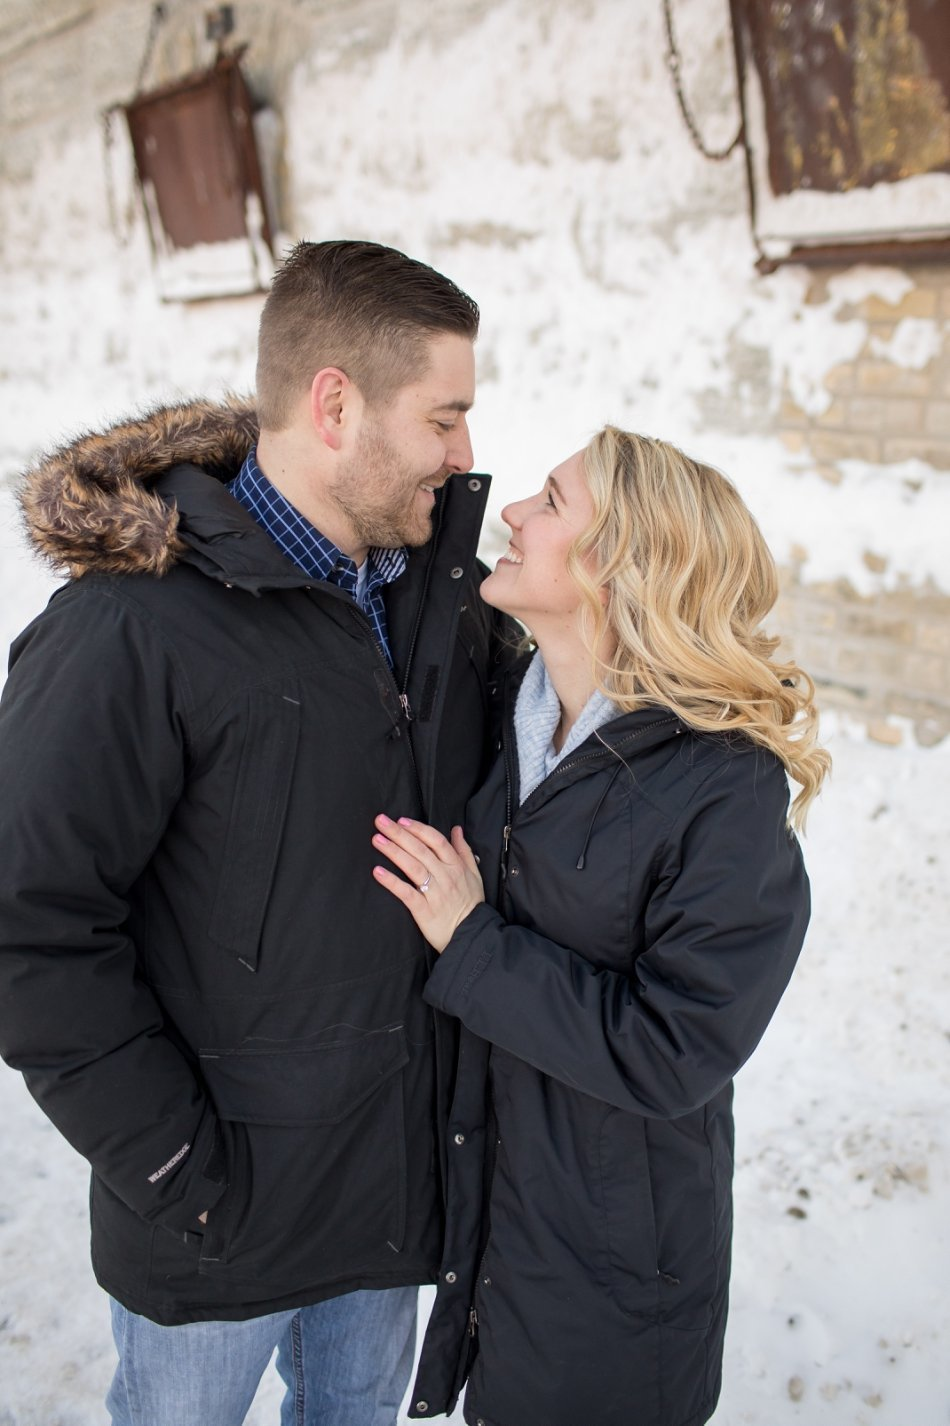 Minnesota Engagement Photography - Claire & Ethan (7)